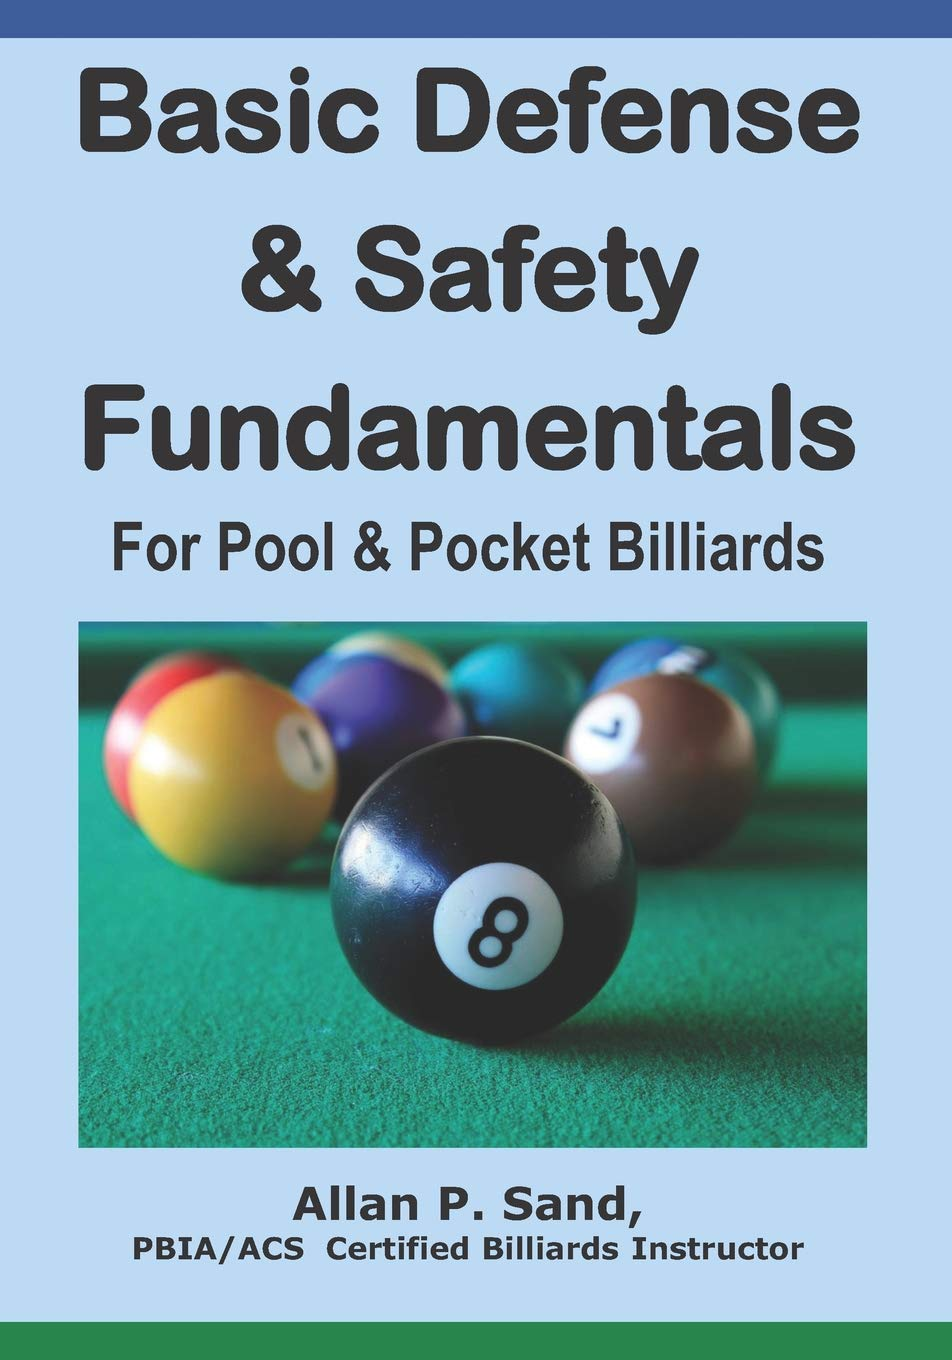 Basic Defense & Safety Fundamentals for Pool & Pocket Billiards ...